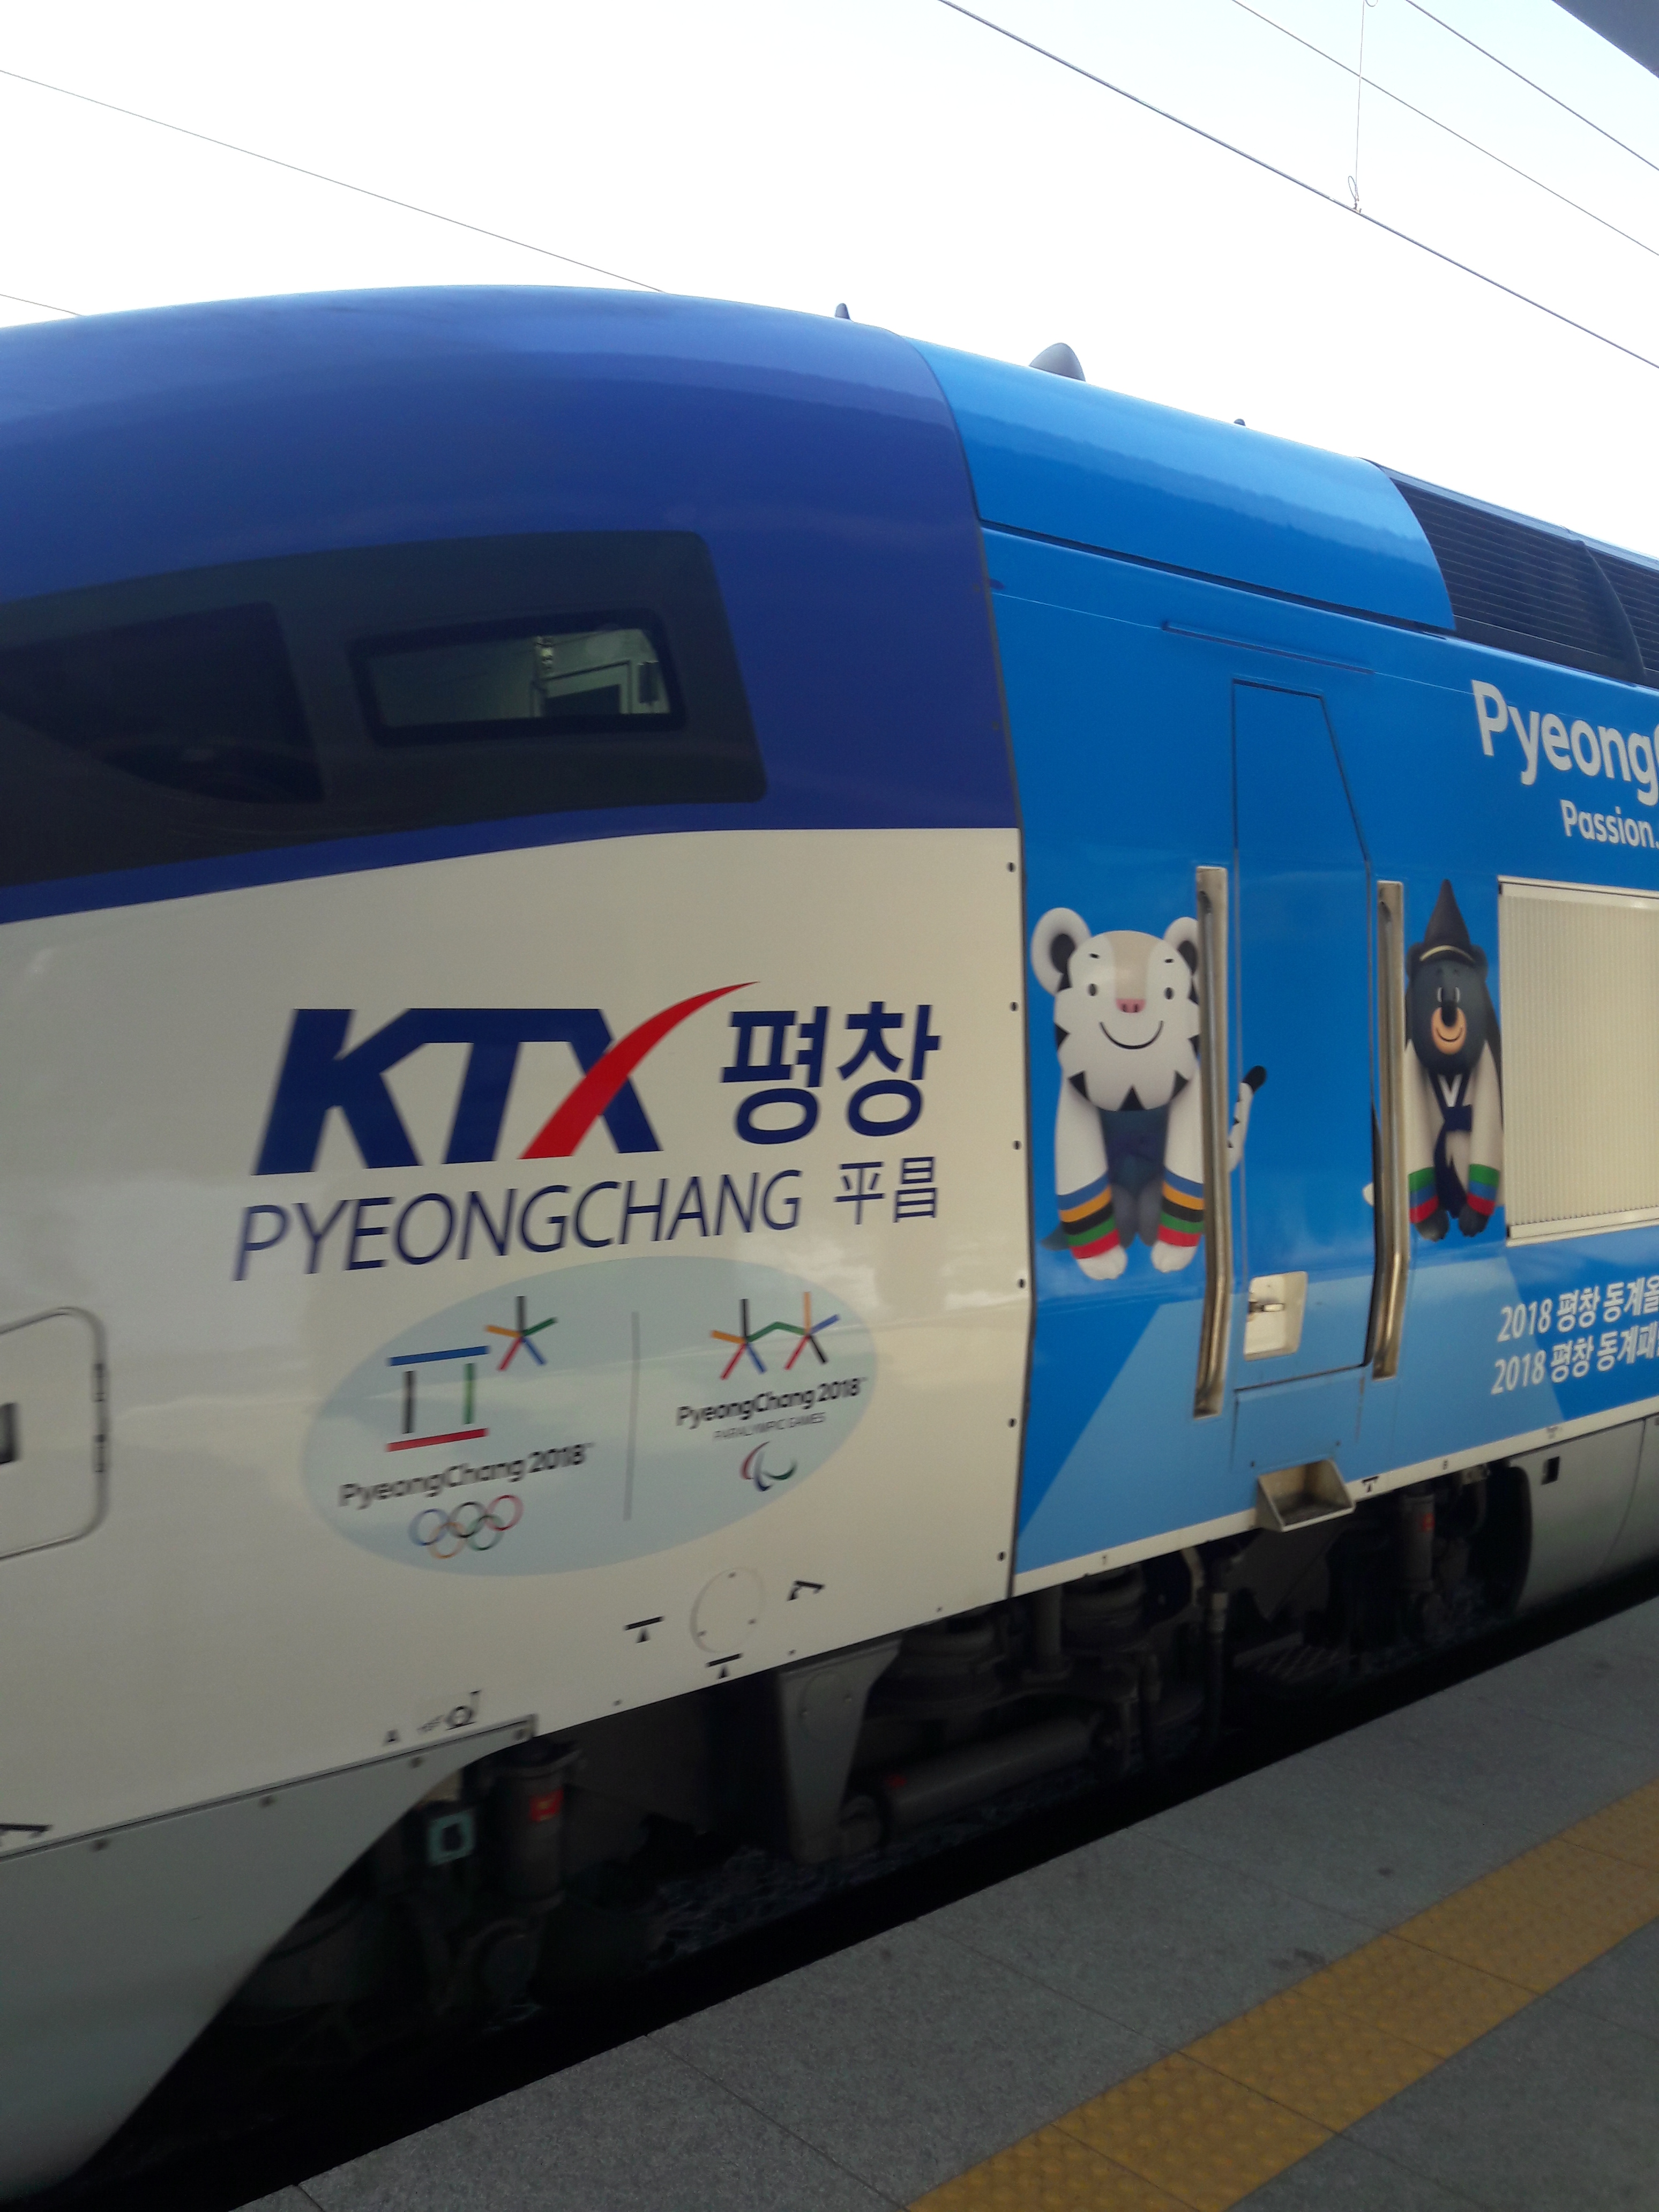 KTX-PyeongChang-train